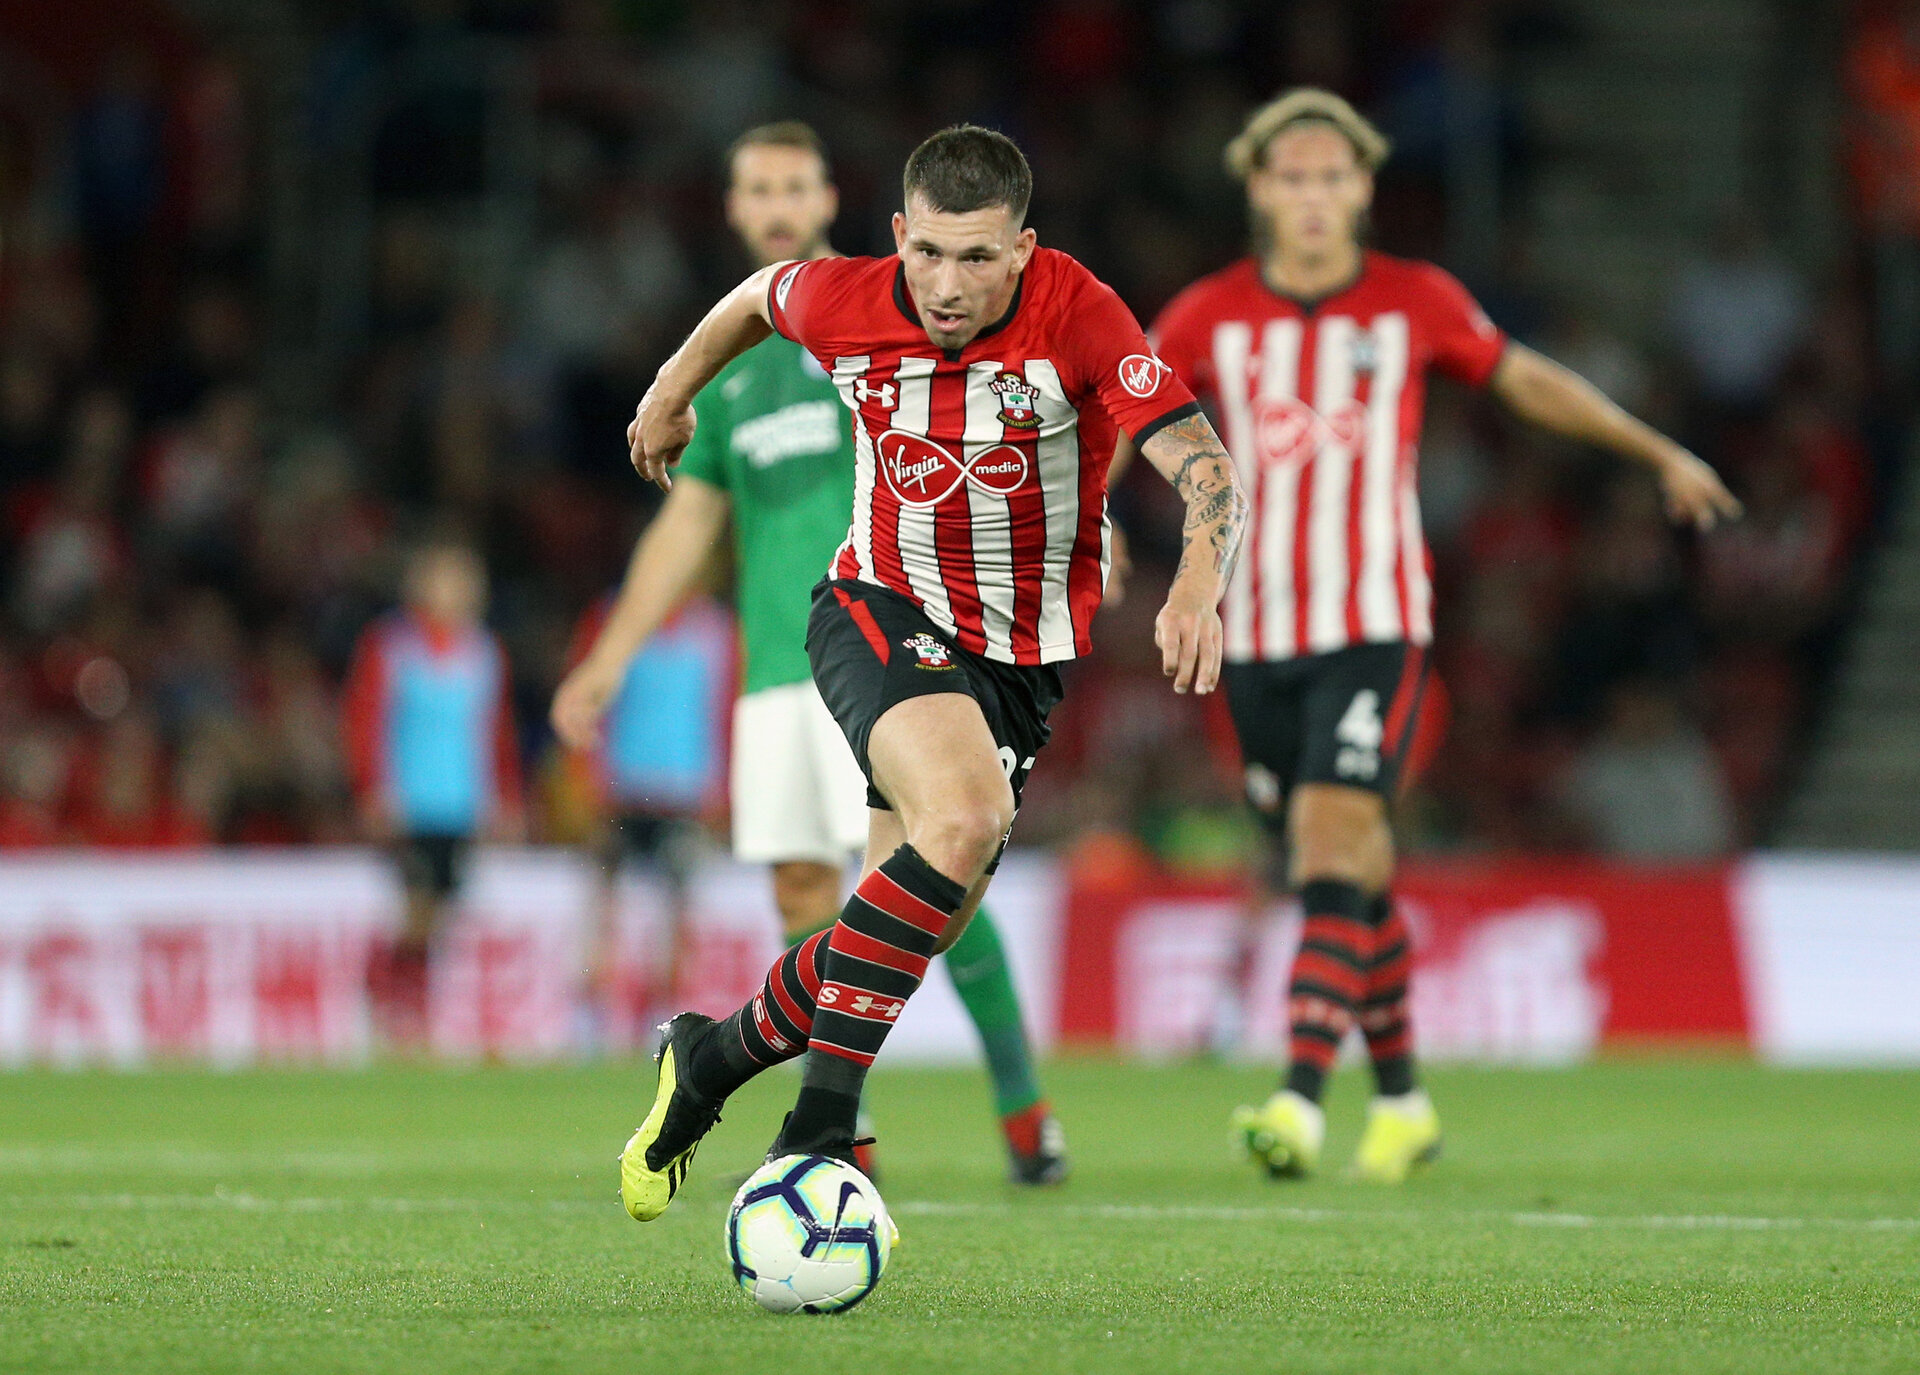 SOUTHAMPTON, ENGLAND - SEPTEMBER 17: Pierre-Emile Hojbjerg of Southampton runs with the ball during the Premier League match between Southampton FC and Brighton & Hove Albion at St Mary's Stadium on September 17, 2018 in Southampton, United Kingdom.  (Photo by Southampton FC/Southampton FC via Getty Images) *** Local Caption *** Pierre-Emile Hojbjerg SOUTHAMPTON, ENGLAND - SEPTEMBER 17: Pierre-Emile Hojbjerg of Southampton runs with the ball during the Premier League match between Southampton FC and Brighton & Hove Albion at St Mary's Stadium on September 17, 2018 in Southampton, United Kingdom.  (Photo by Southampton FC/Southampton FC via Getty Images)